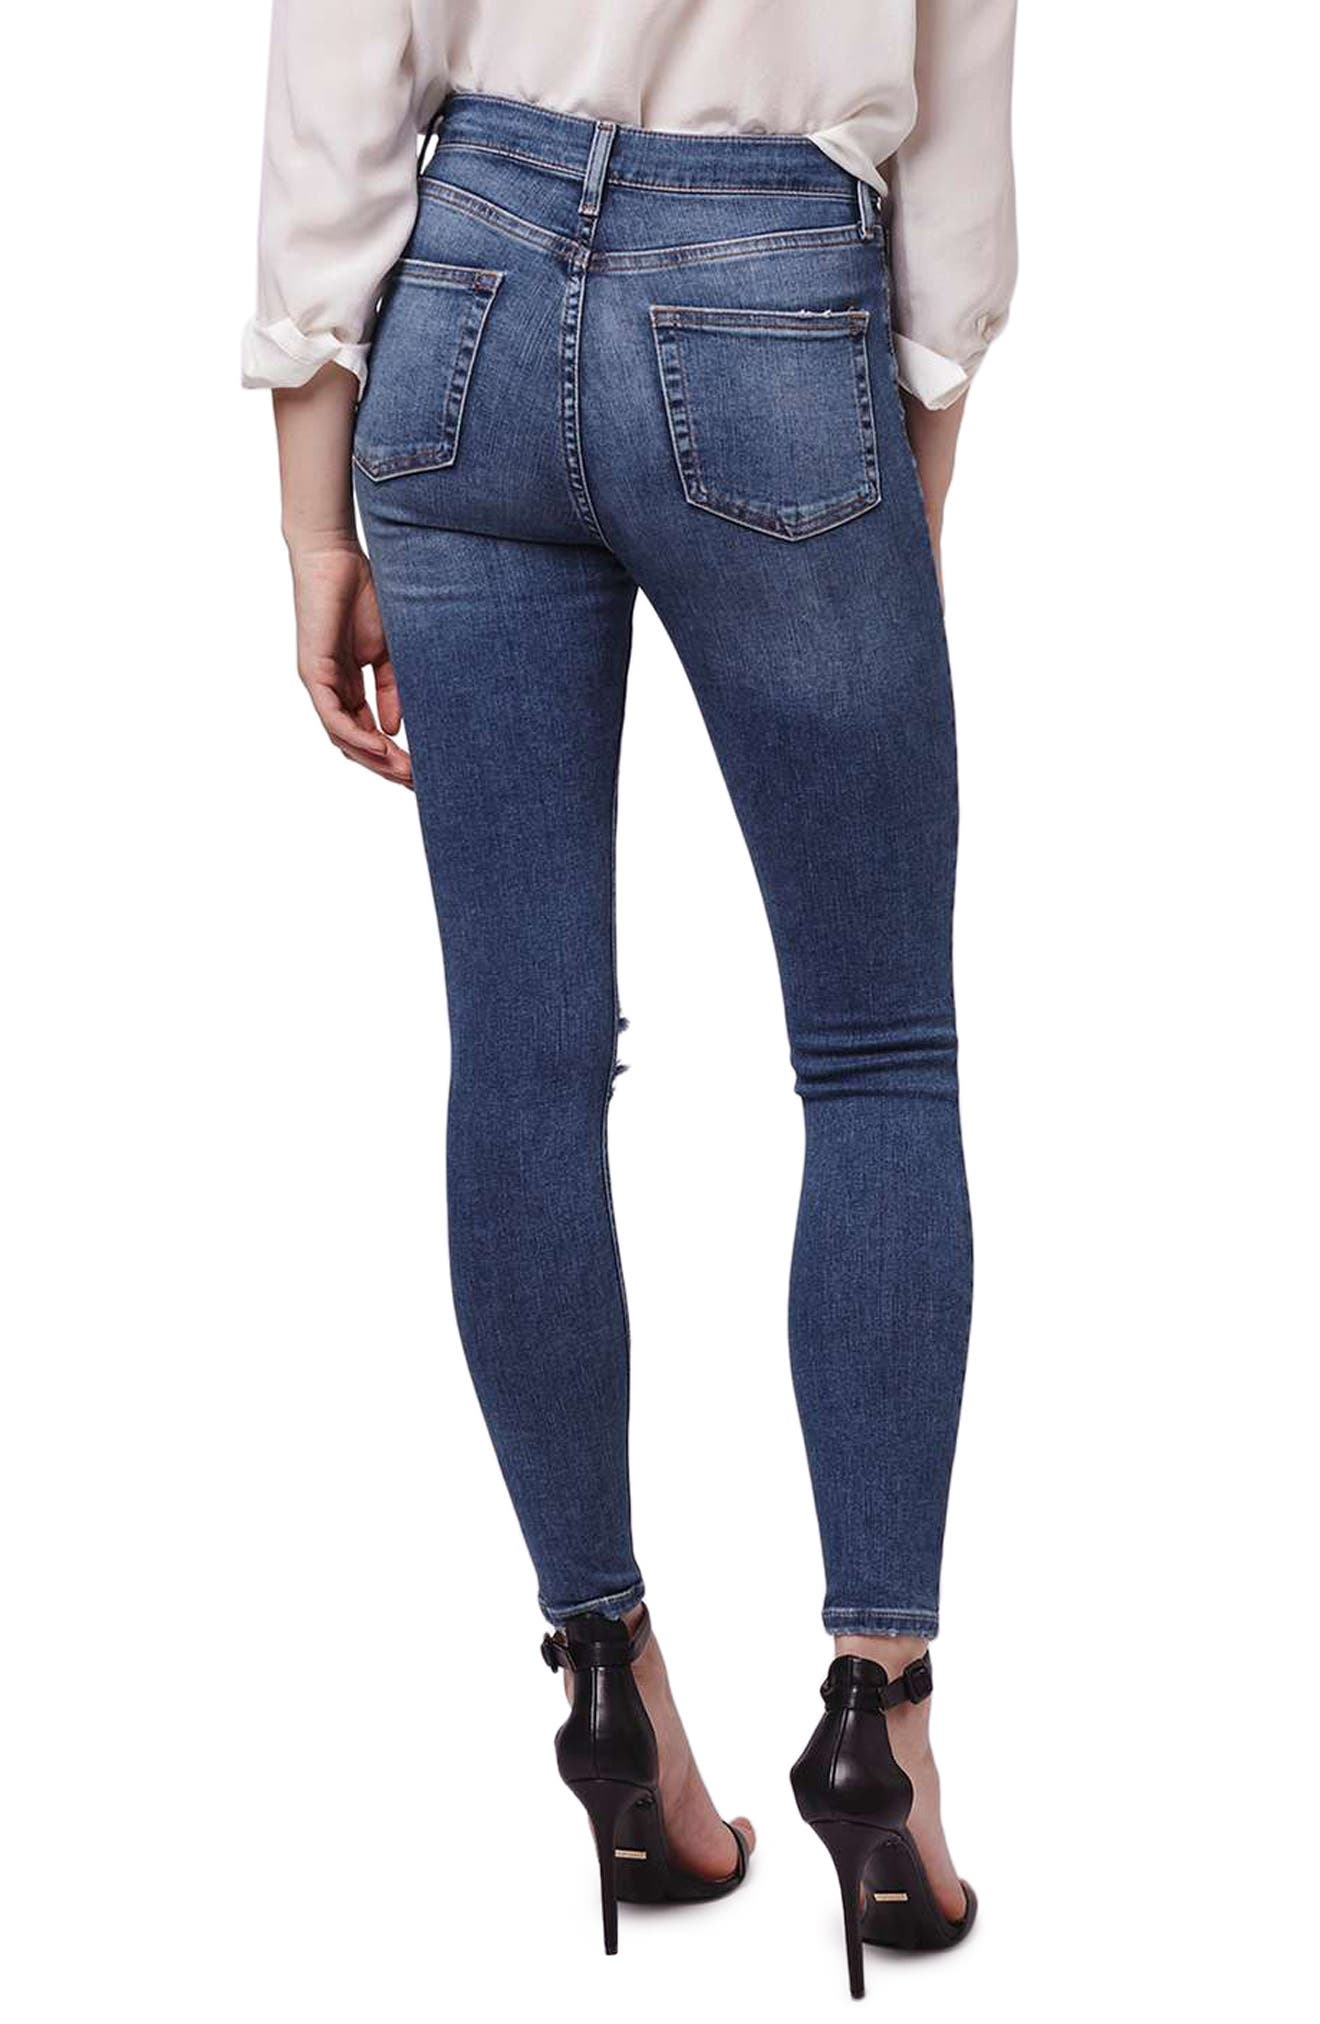 Jamie Rip High Waist Skinny Jeans,                             Alternate thumbnail 2, color,                             420